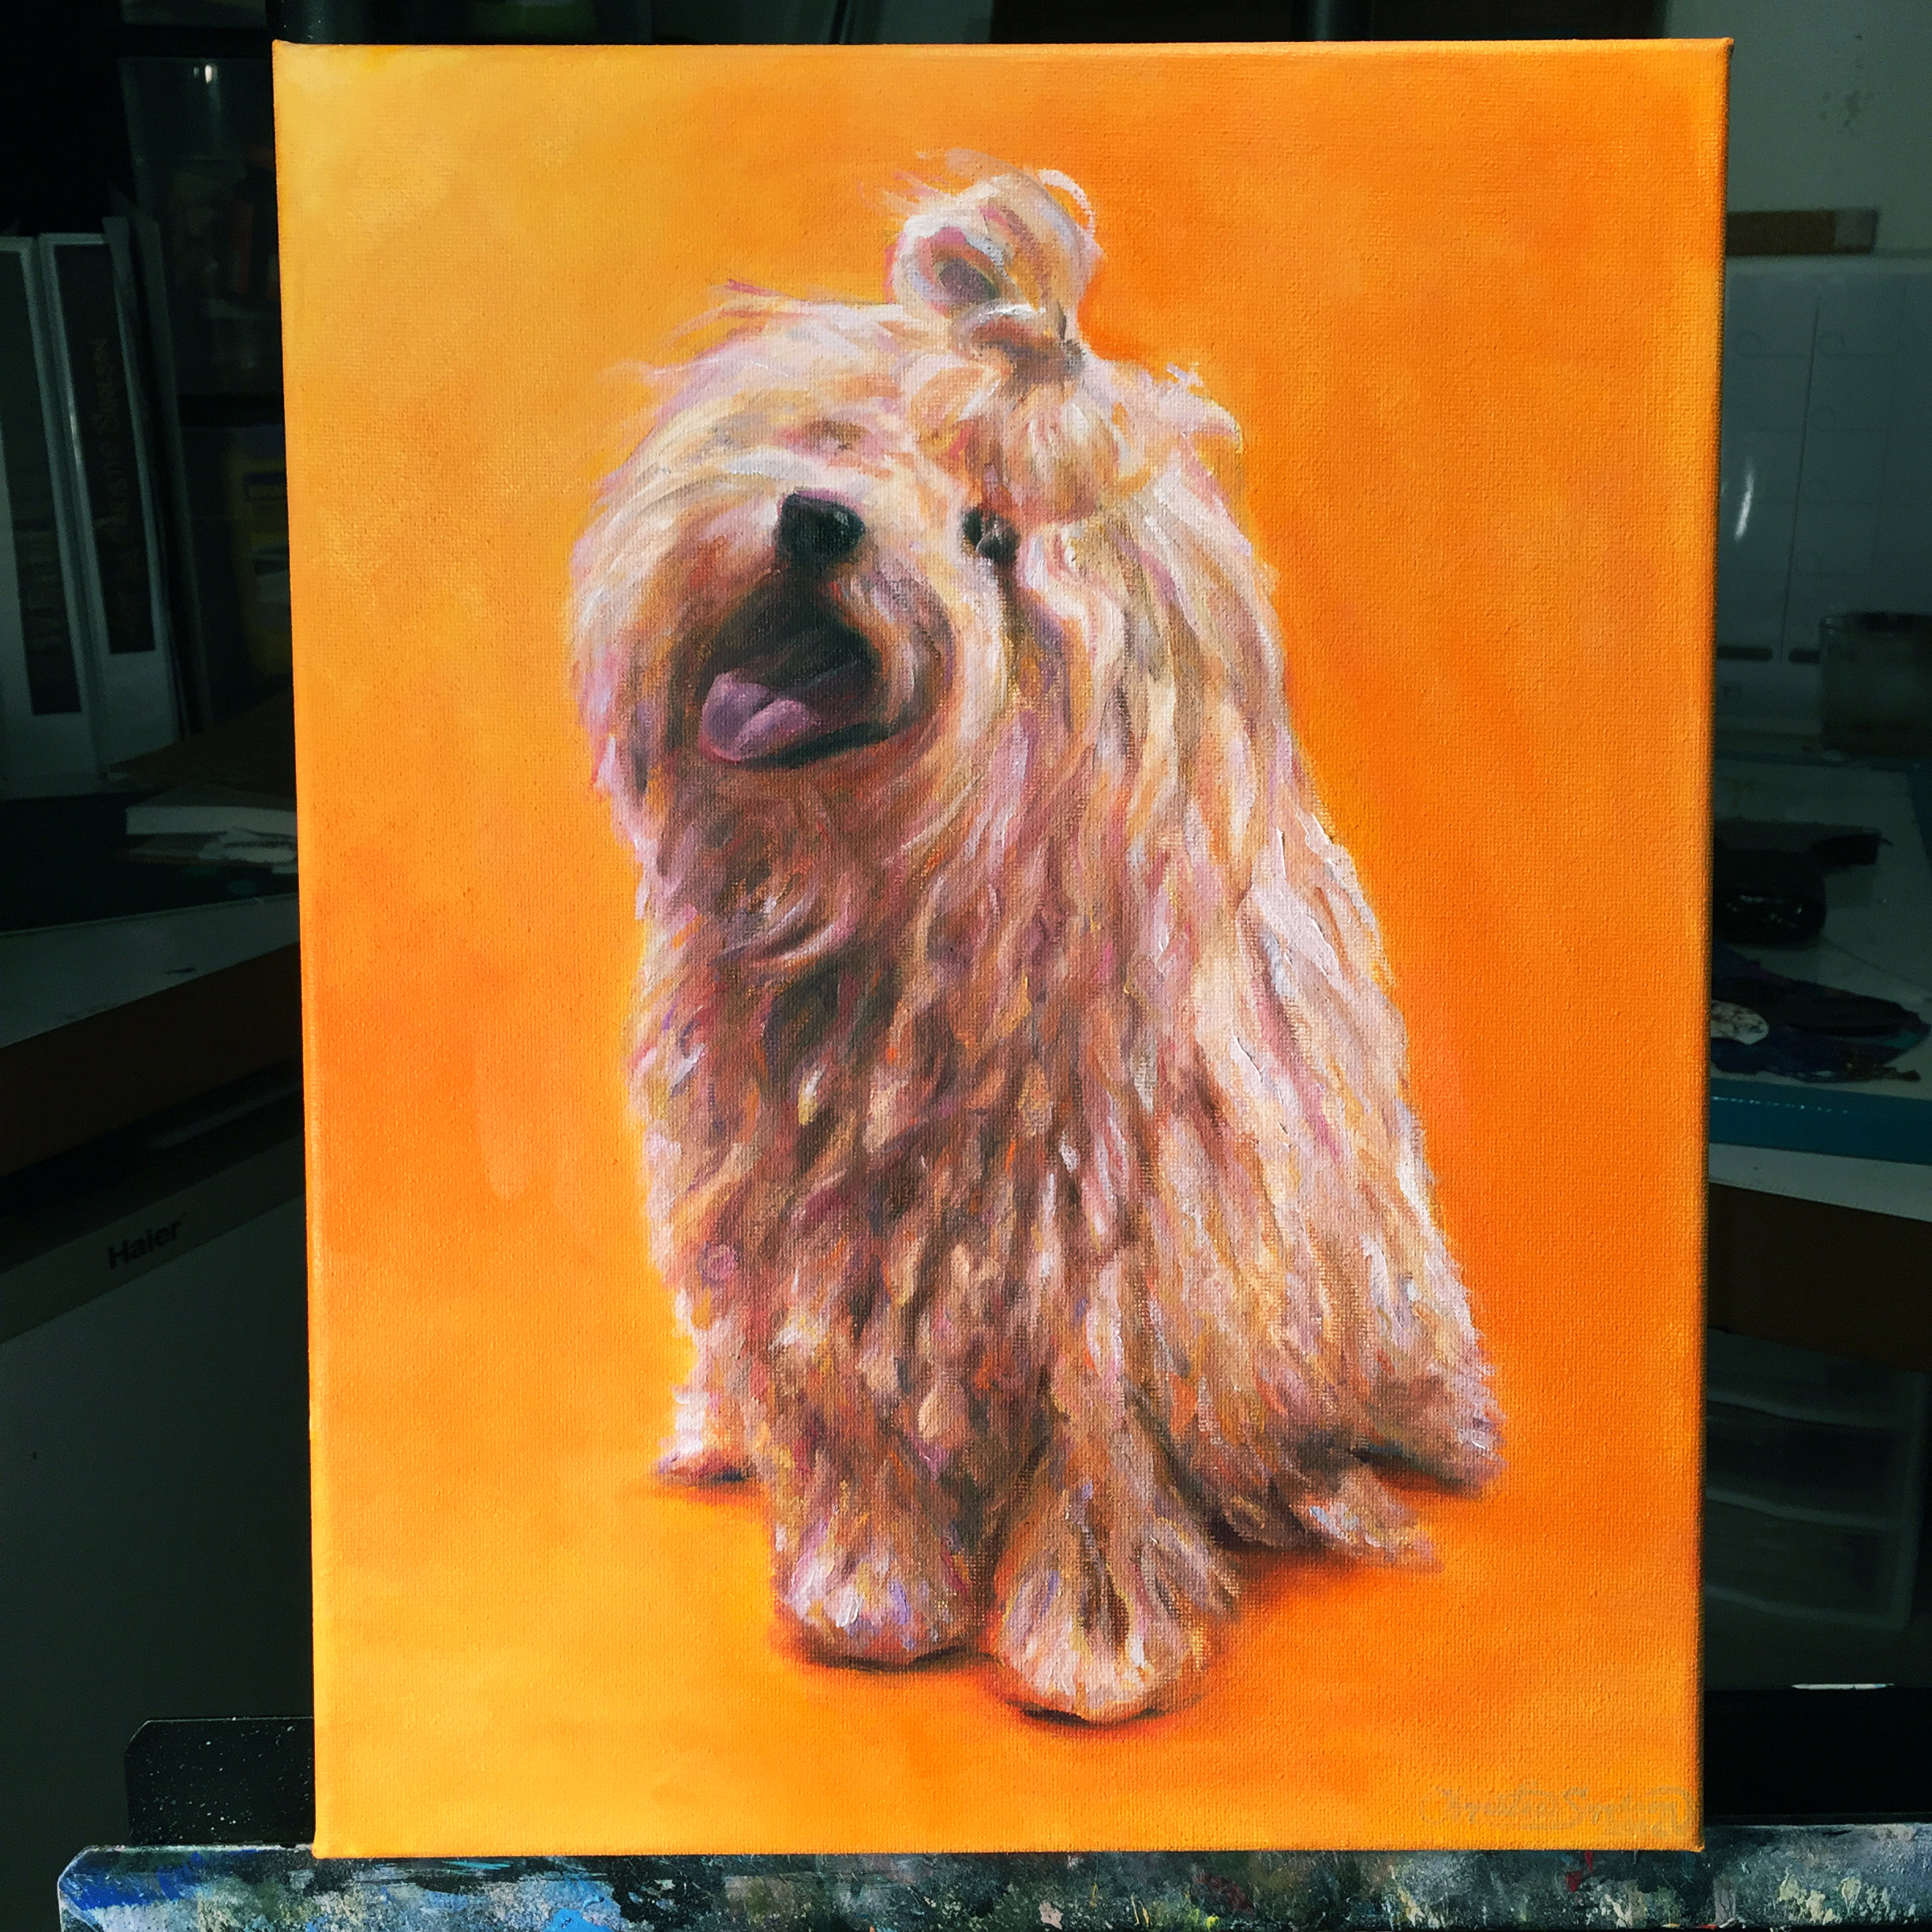 Beast_Dog Portrait_Christie Snelson.jpg